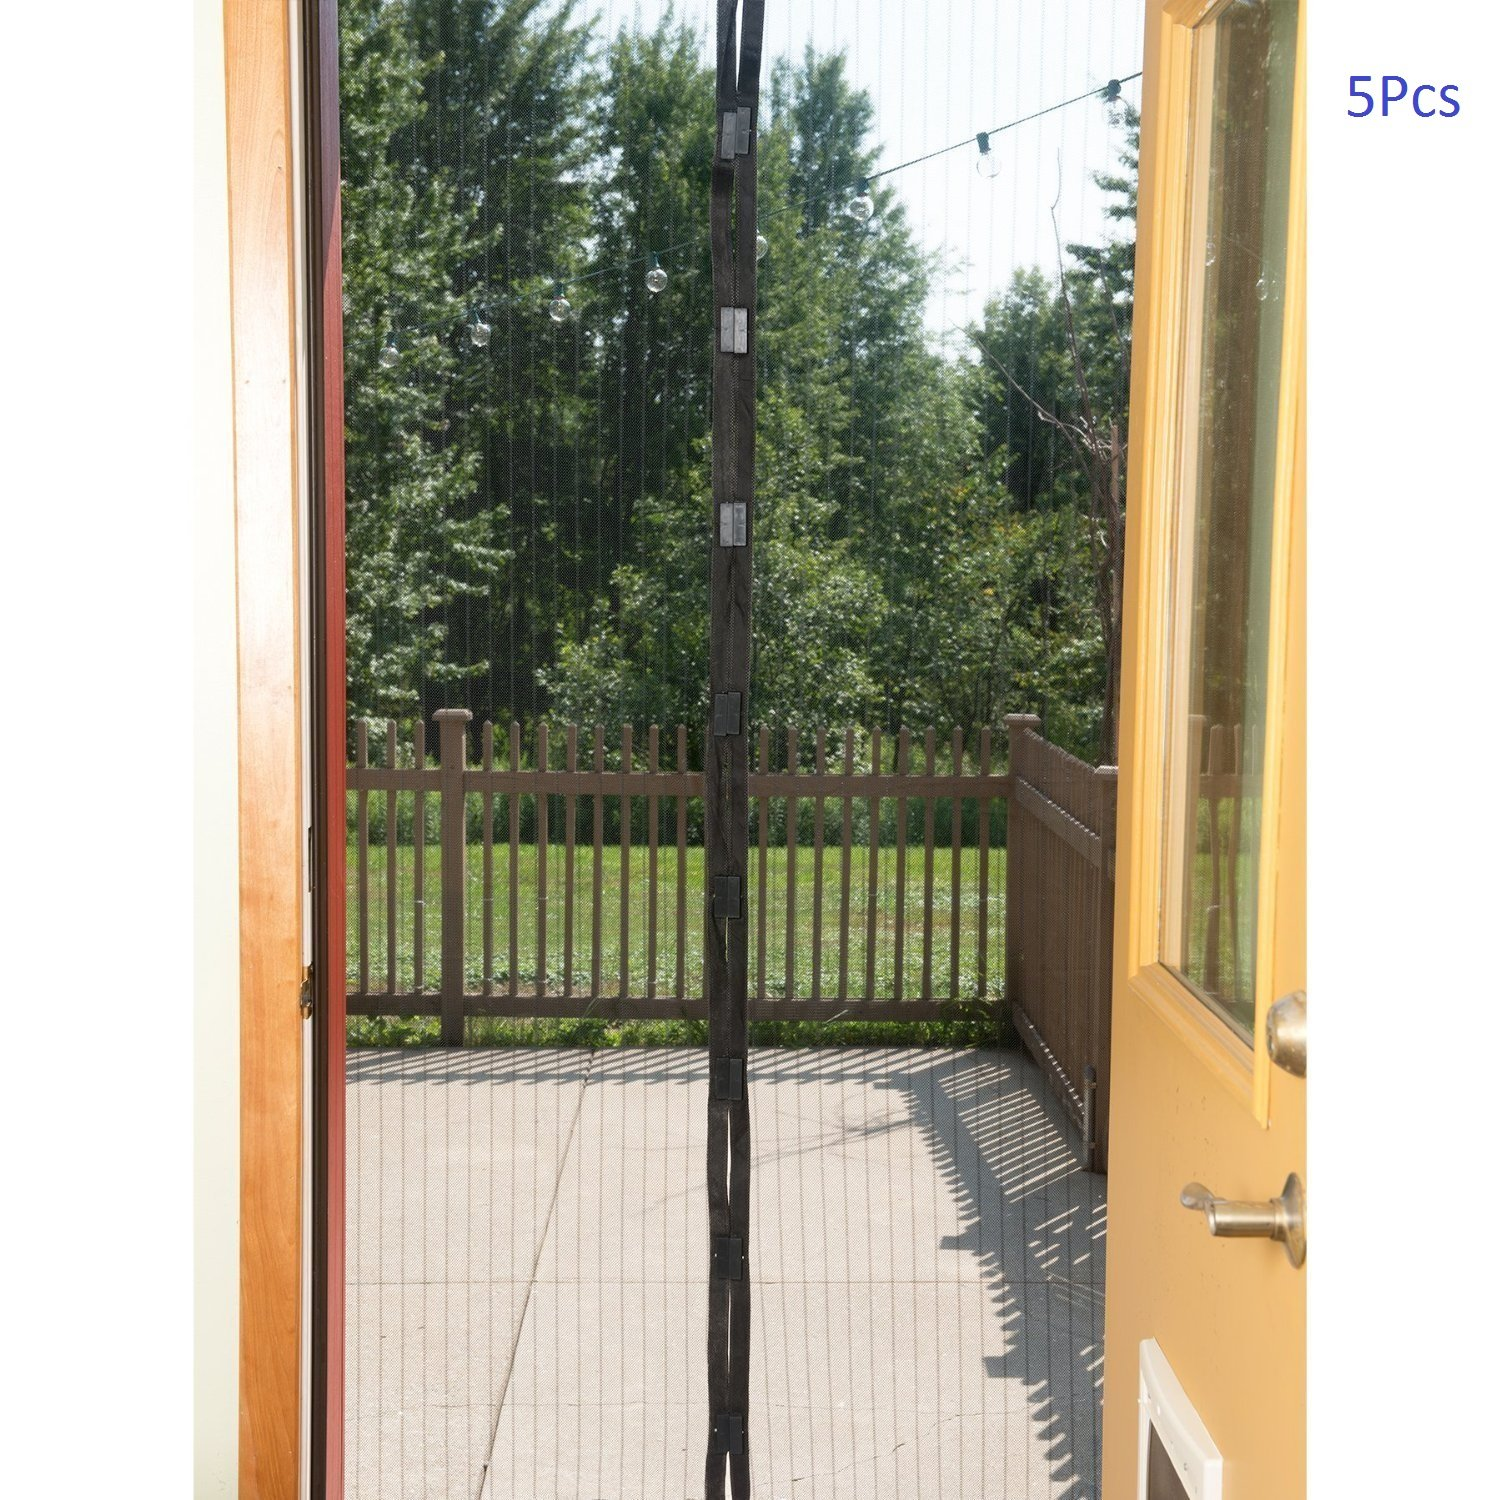 E joy hands free retractable magic mesh screen door 5 pcs for Retractable screen door replacement magnet